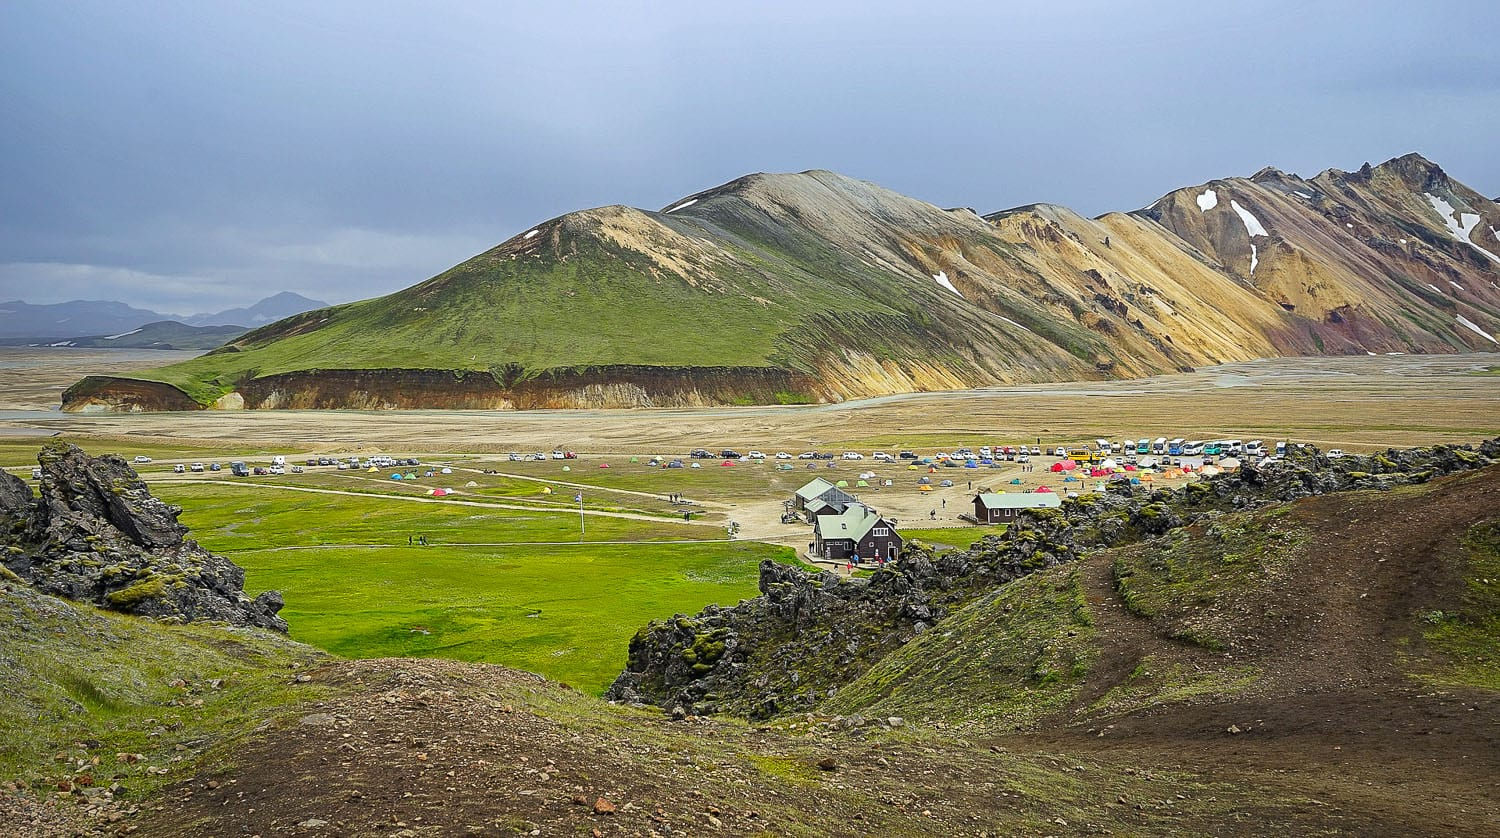 Base camp with plenty if tents and cars in Landmannalaugar